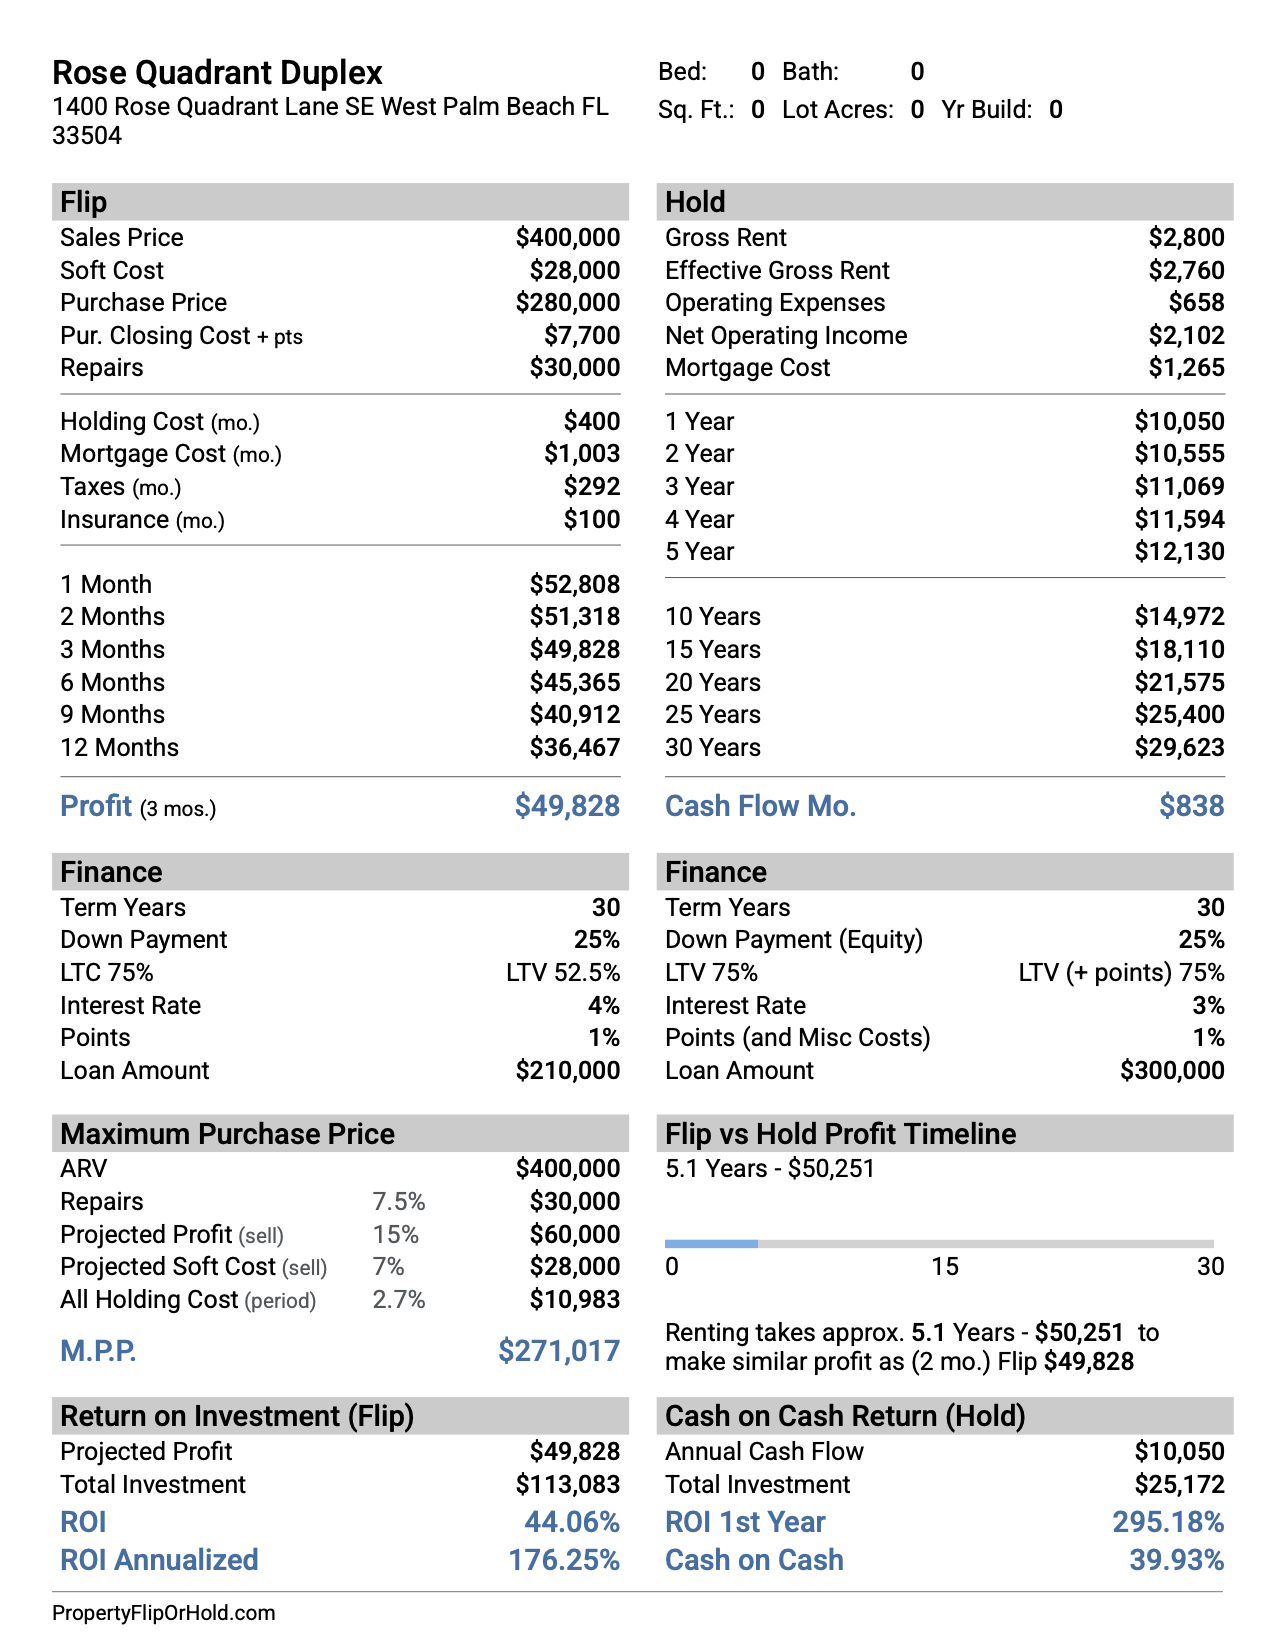 Property Flip or Hold Comparision Report